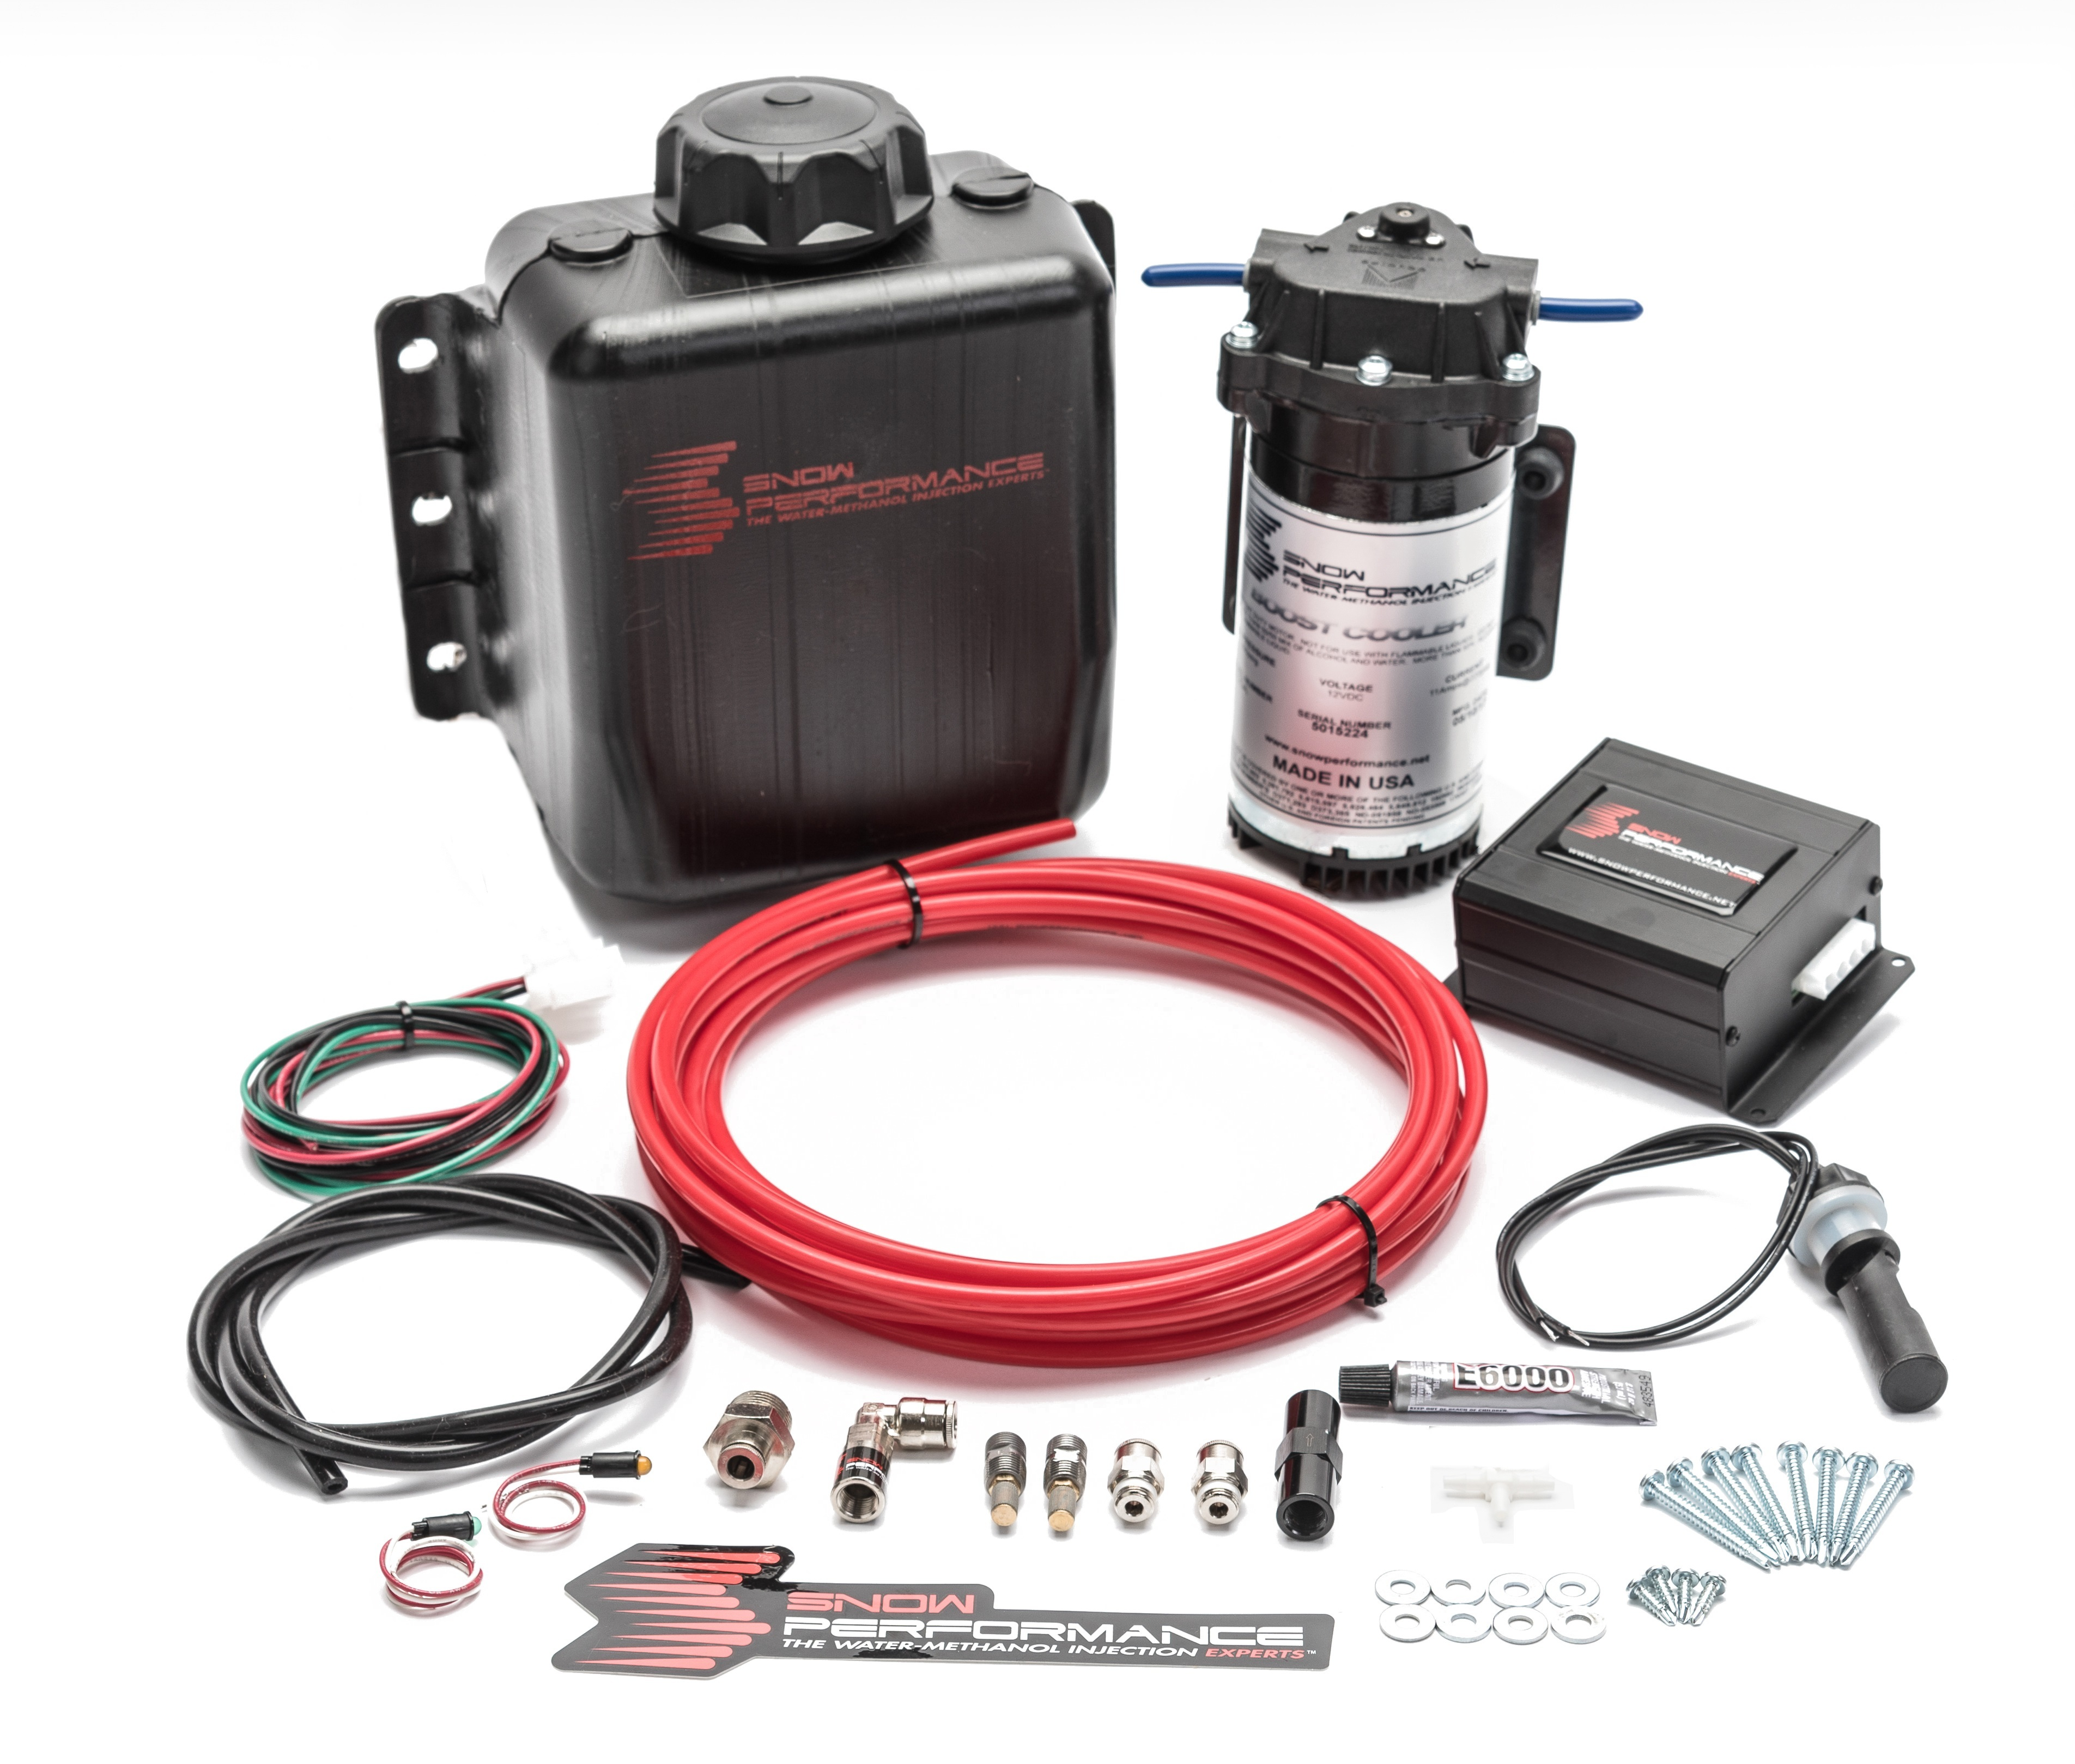 Snow Performance 20010 Water Injection System, Stage 2 Boost Cooler, Boost Reference Controlled, 3 qt Reservoir, Universal Gas, Kit